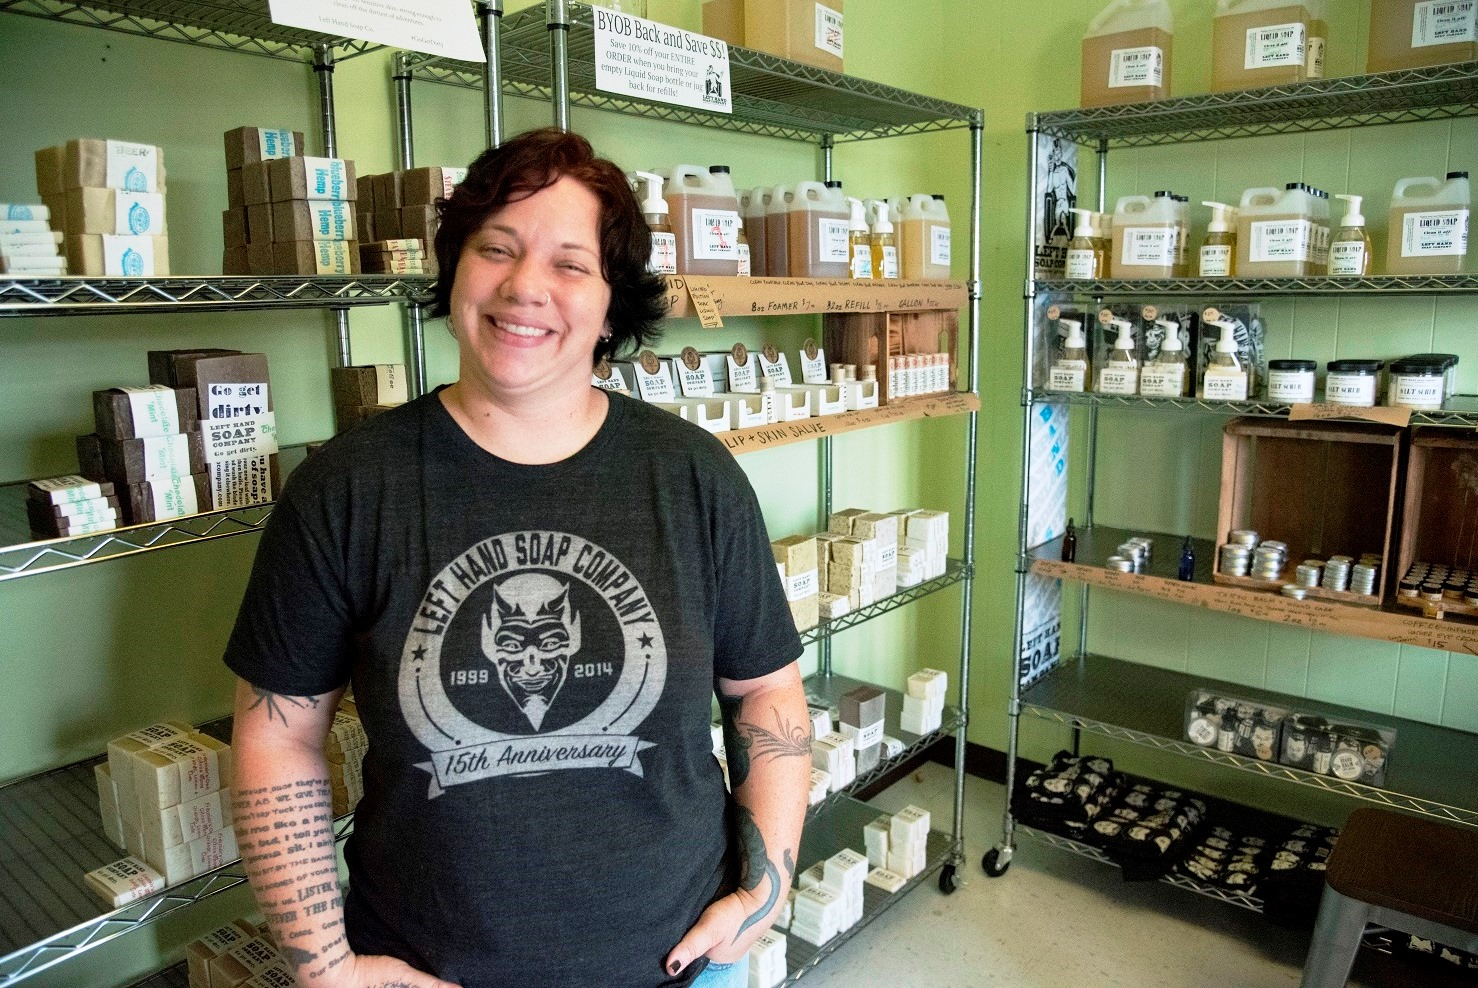 Alabama Maker Left Hand Soap cleans up with all-natural bath